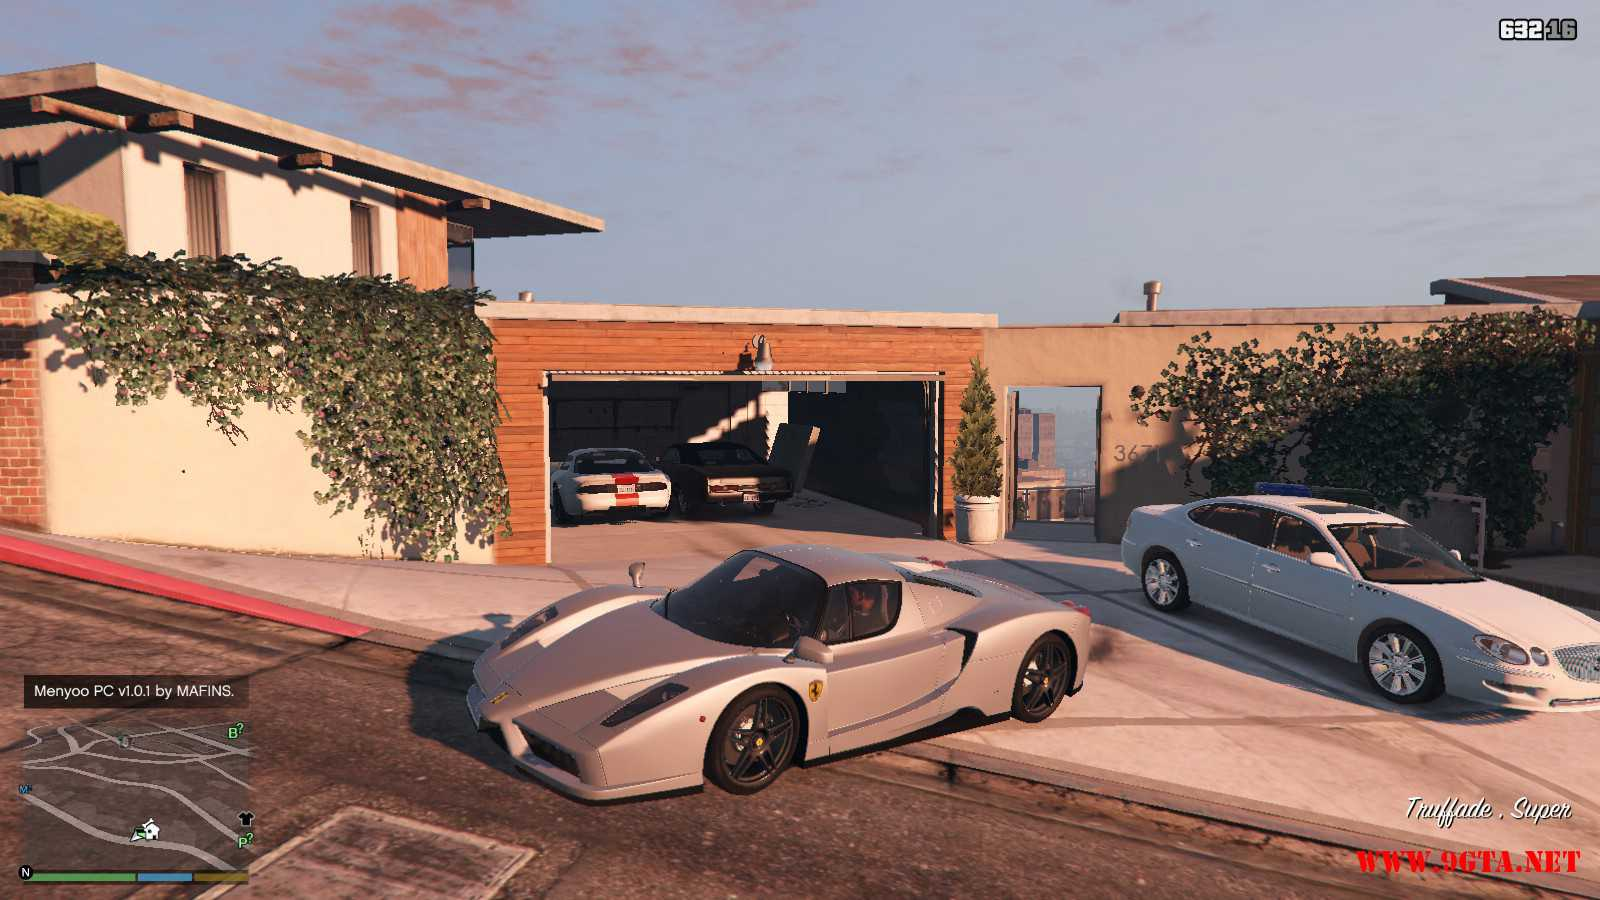 2002 Ferrari Enzo Mod For Gta5 9gta Gta 5 Mods